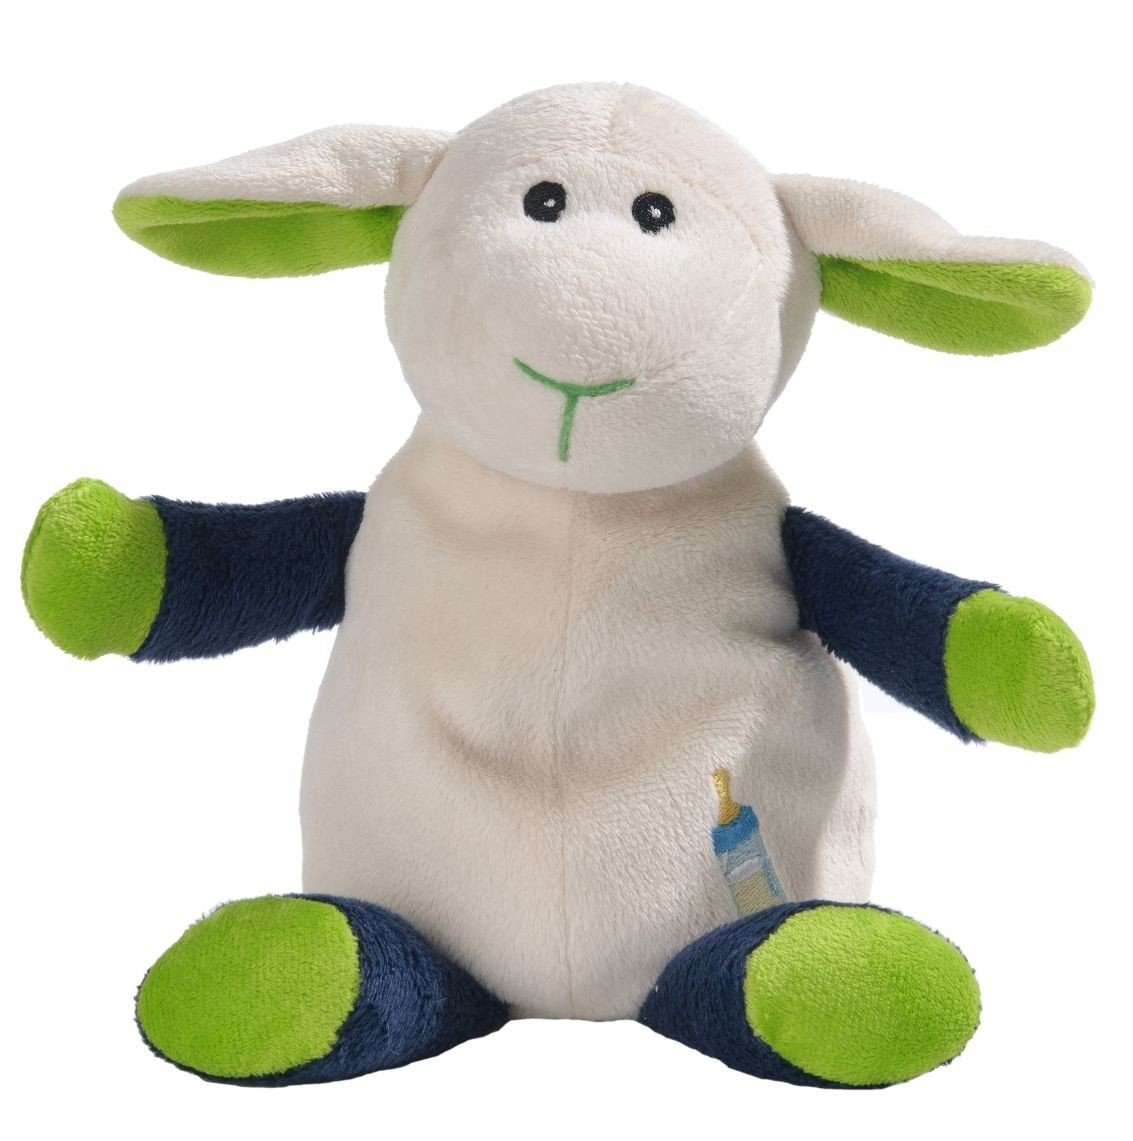 Warmies Pure Sheep with Lavender Scent and Removable Filling Green / Blue BabyCenter 1102